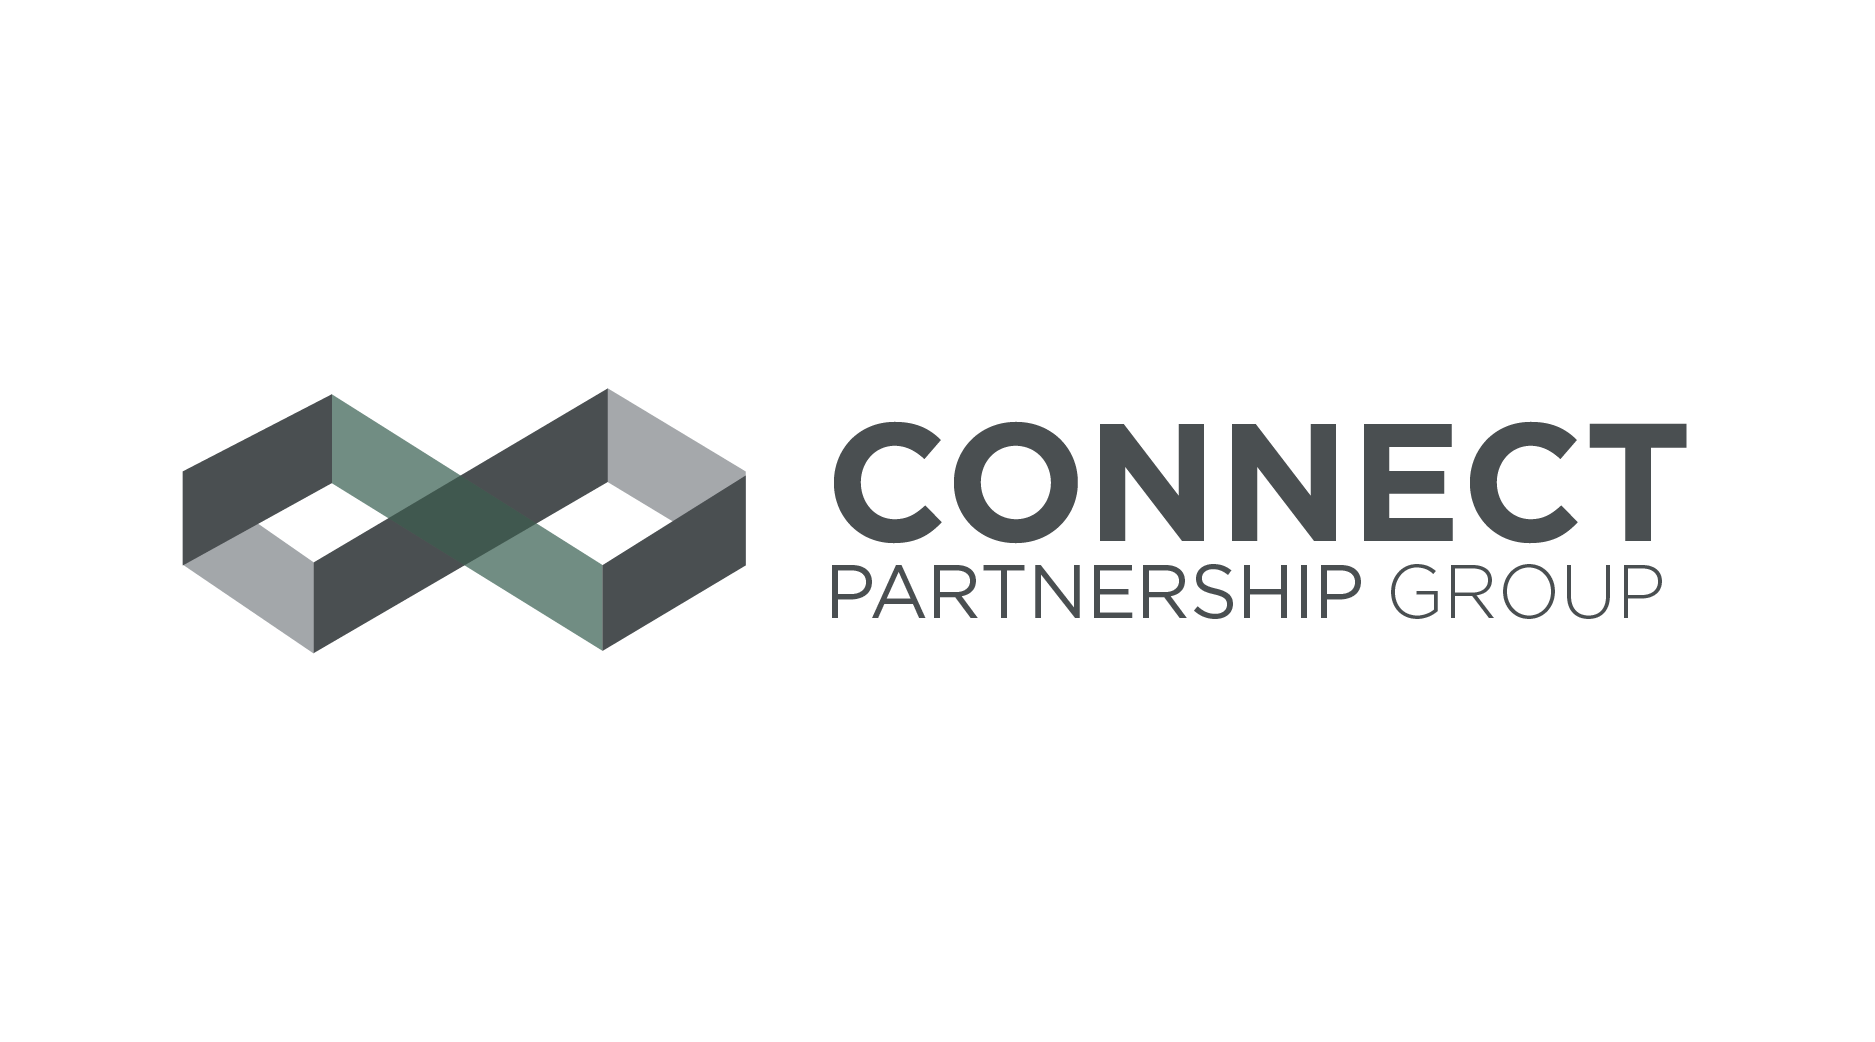 logo_connect-partnership-group.png